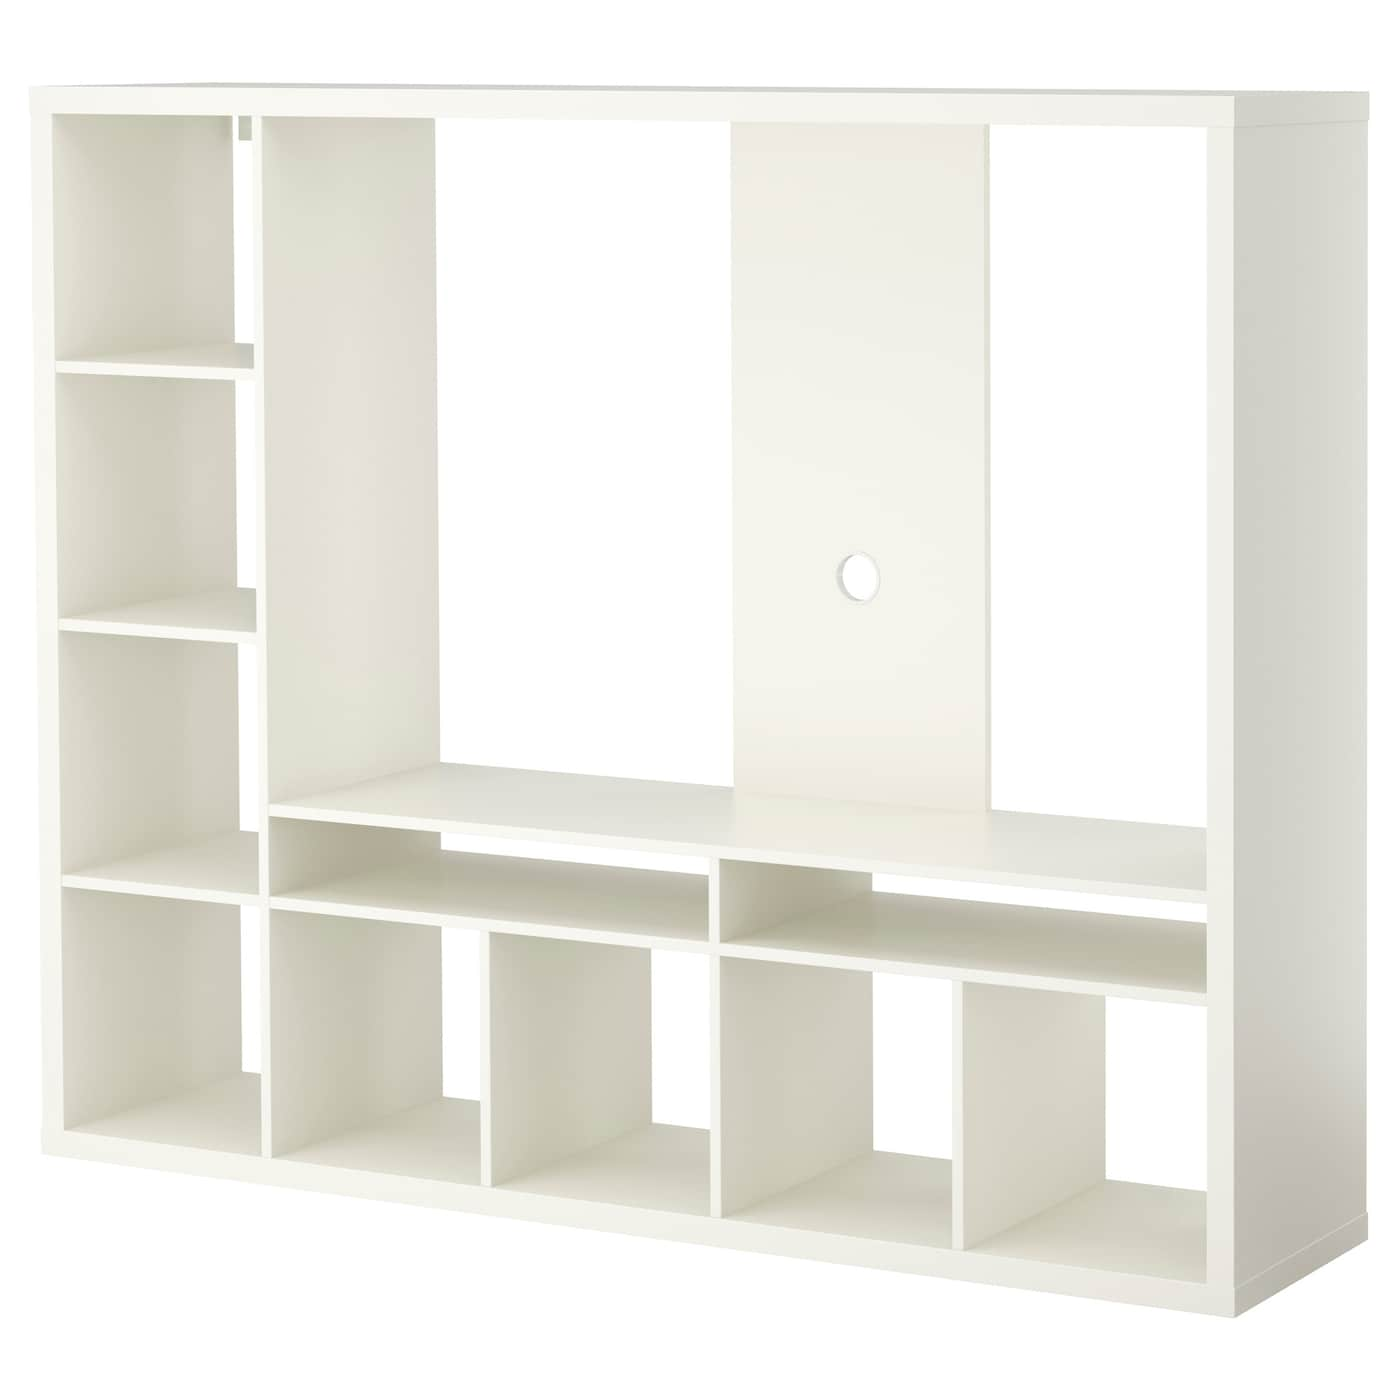 IKEA LAPPLAND TV storage unit Back panel is reinforced to hold a flat screen TV.  sc 1 st  Ikea & Storage Furniture u0026 Accessories | IKEA Ireland